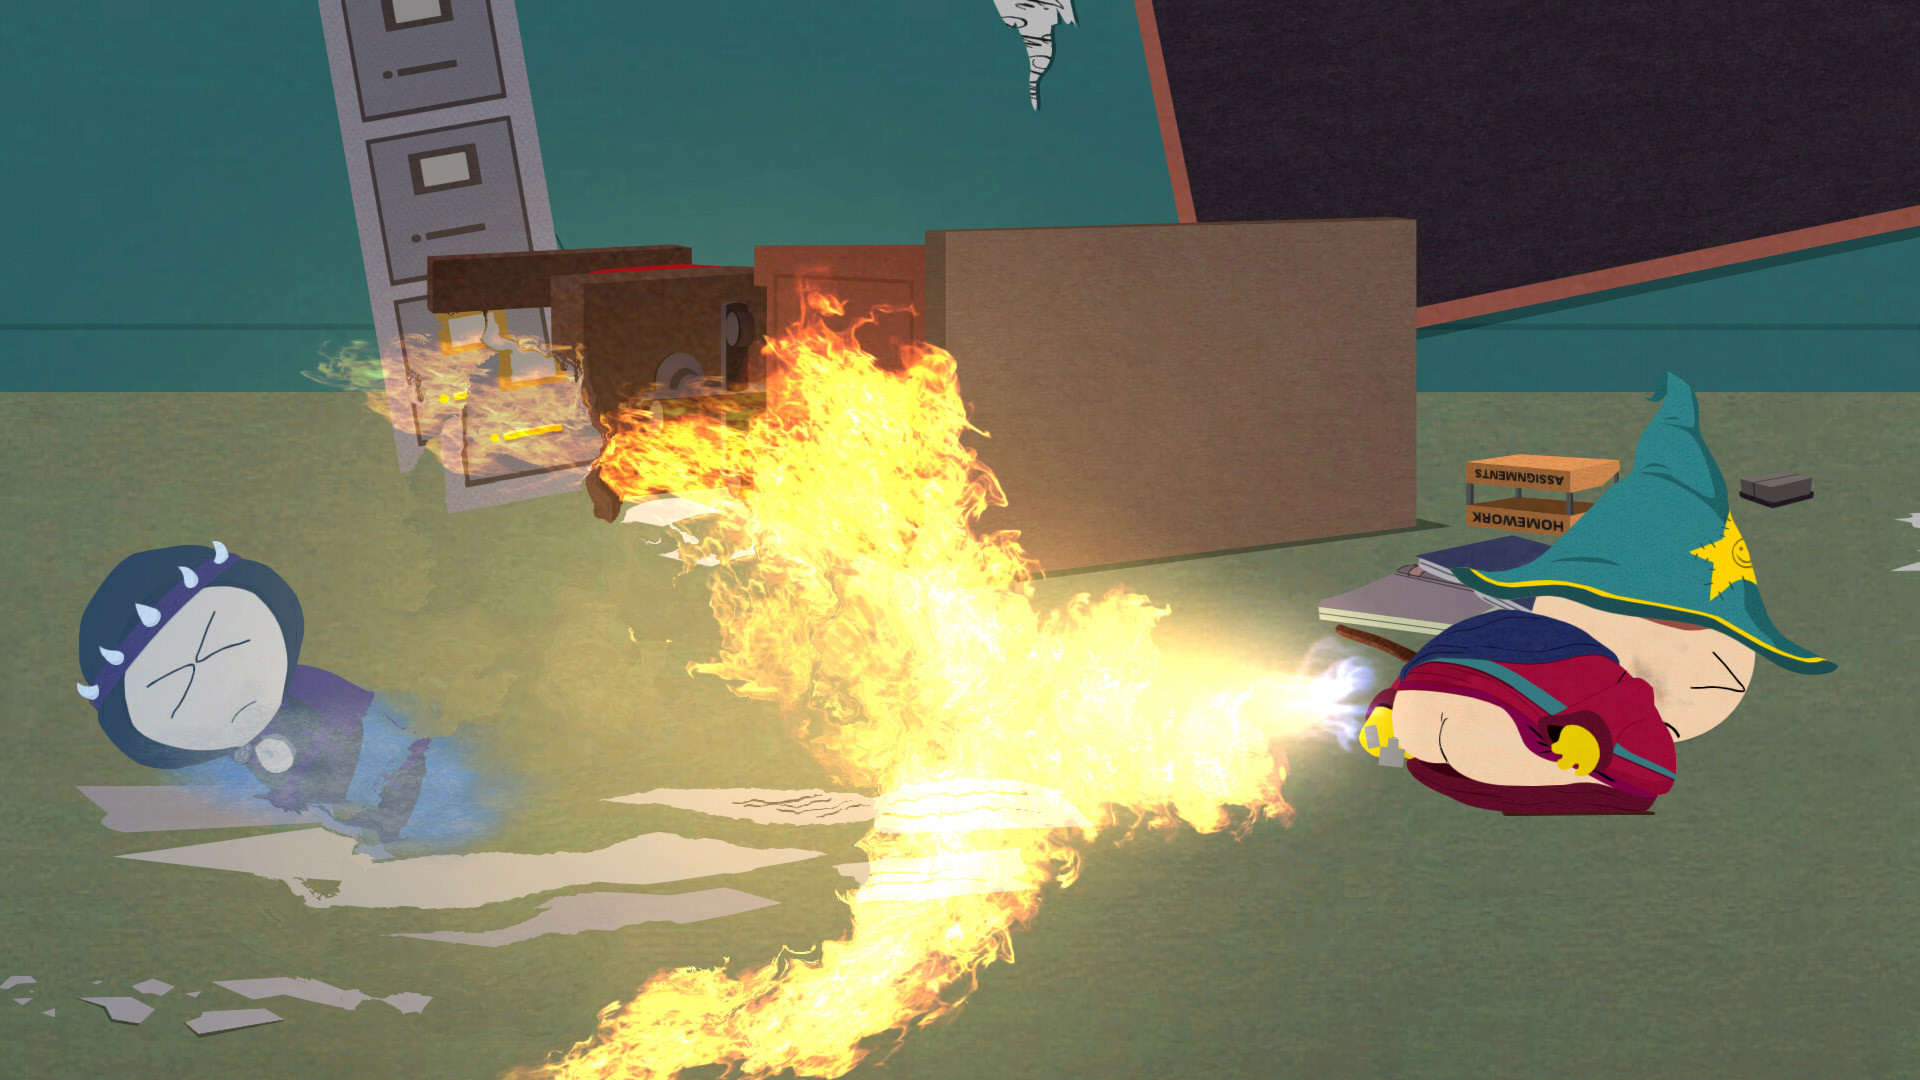 South Park Stick of Truth 01 South Park Games VR Fart Simulator Looks Incredible